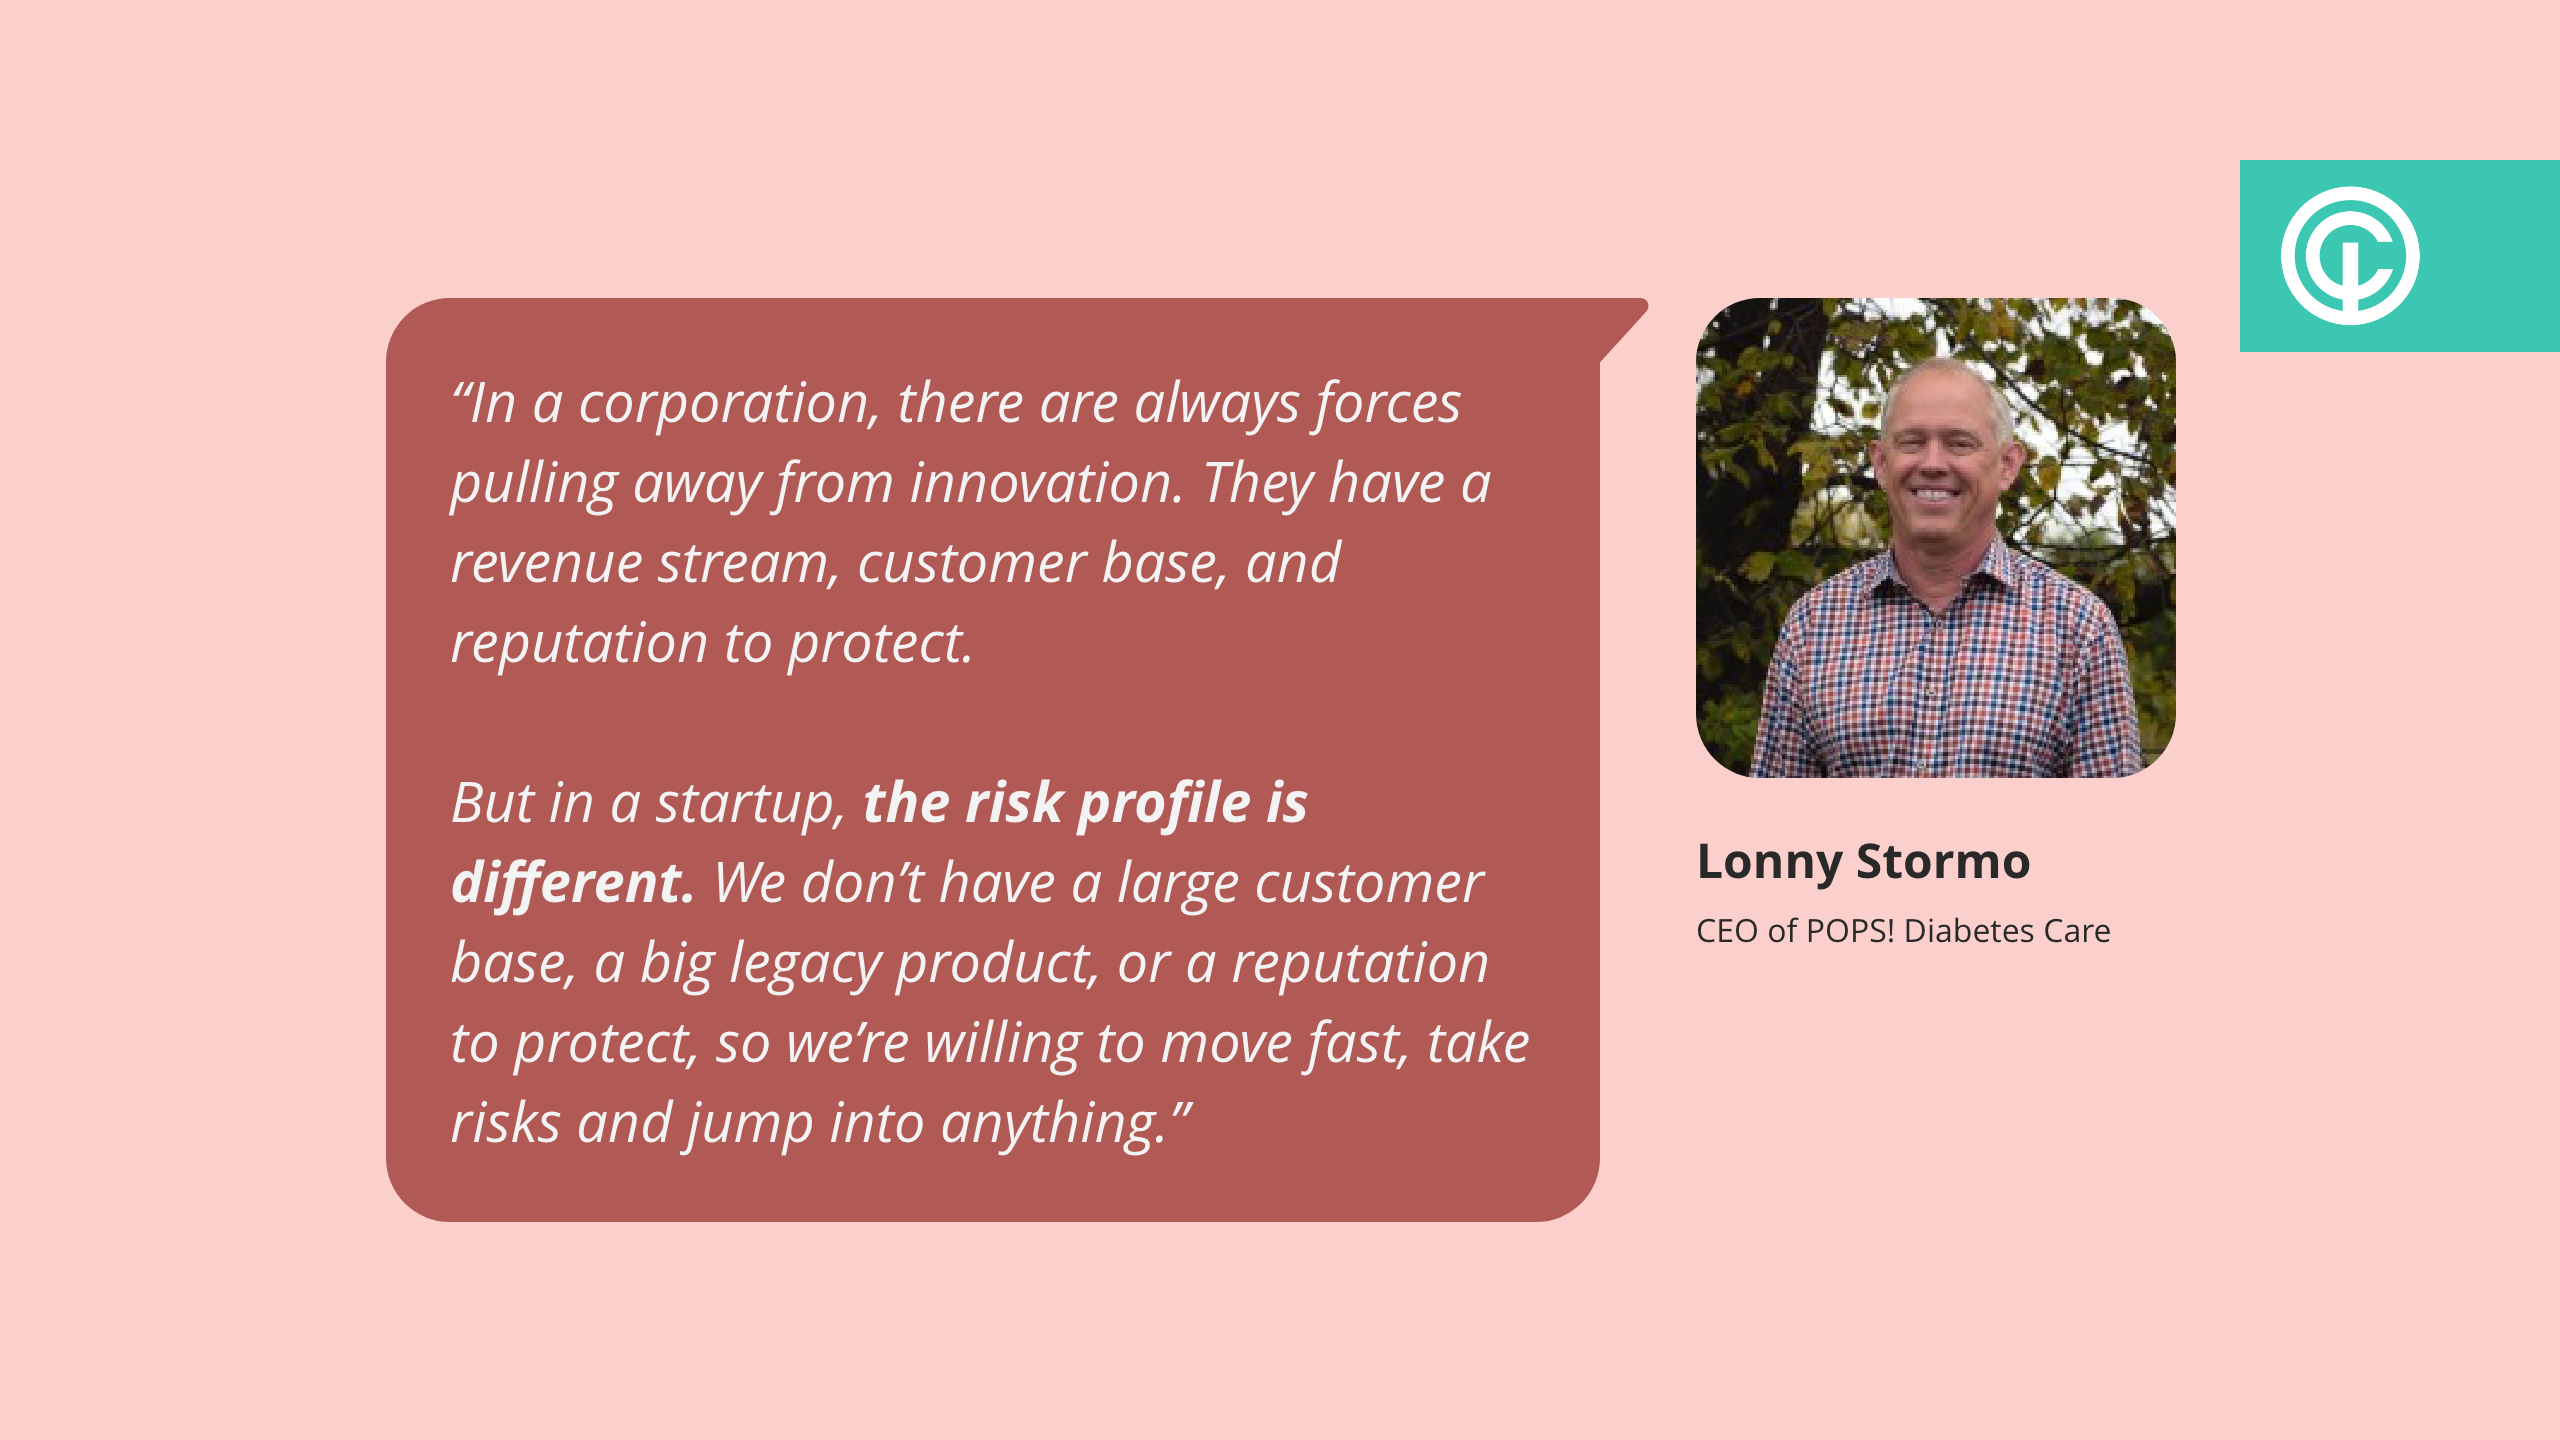 quote from lonny stormo